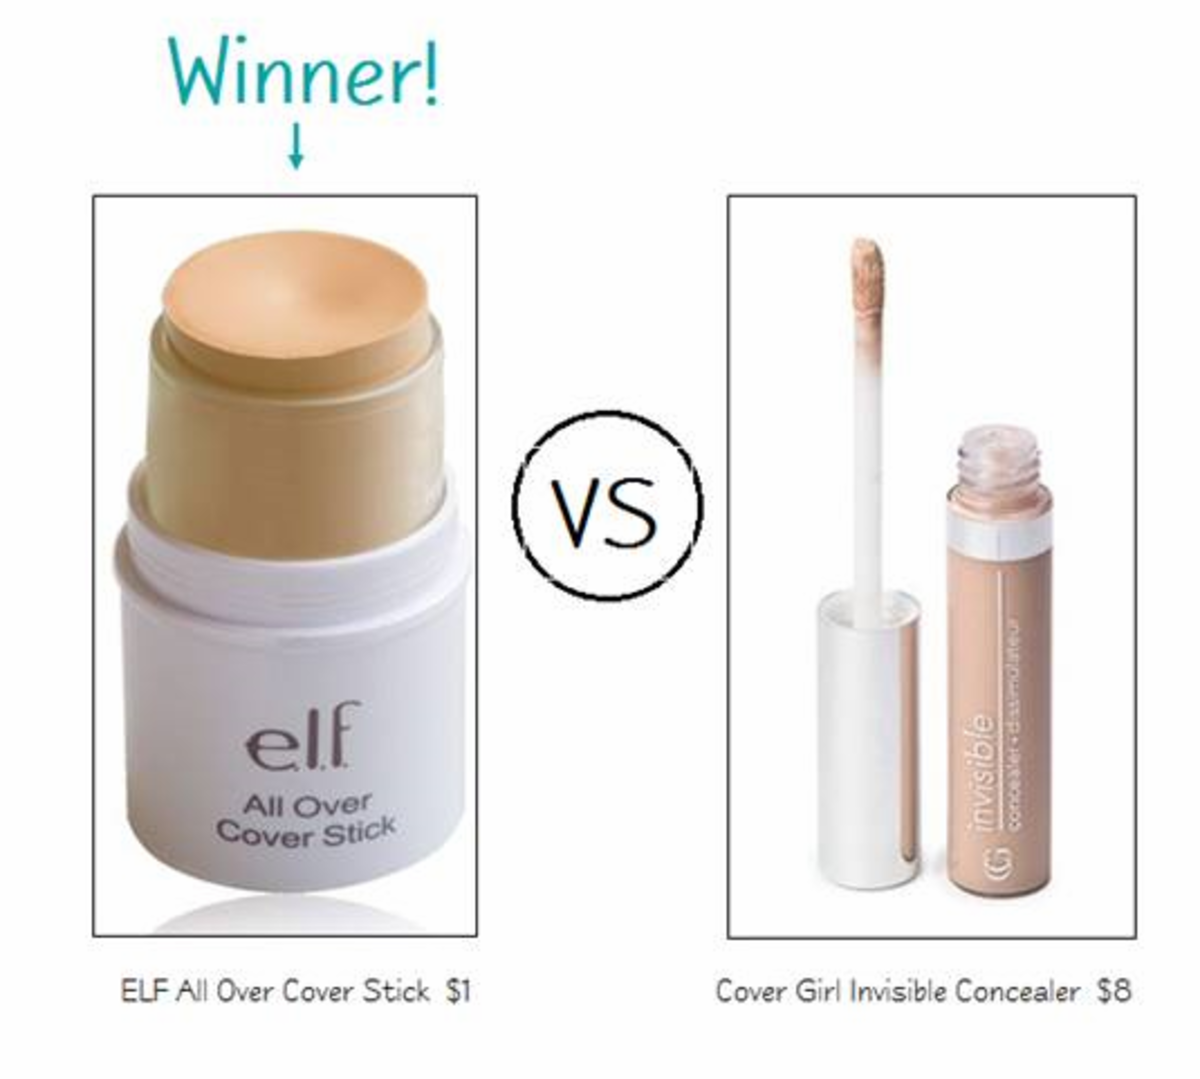 ELF All Over Cover Stick vs. Cover Girl Invisible Concealer